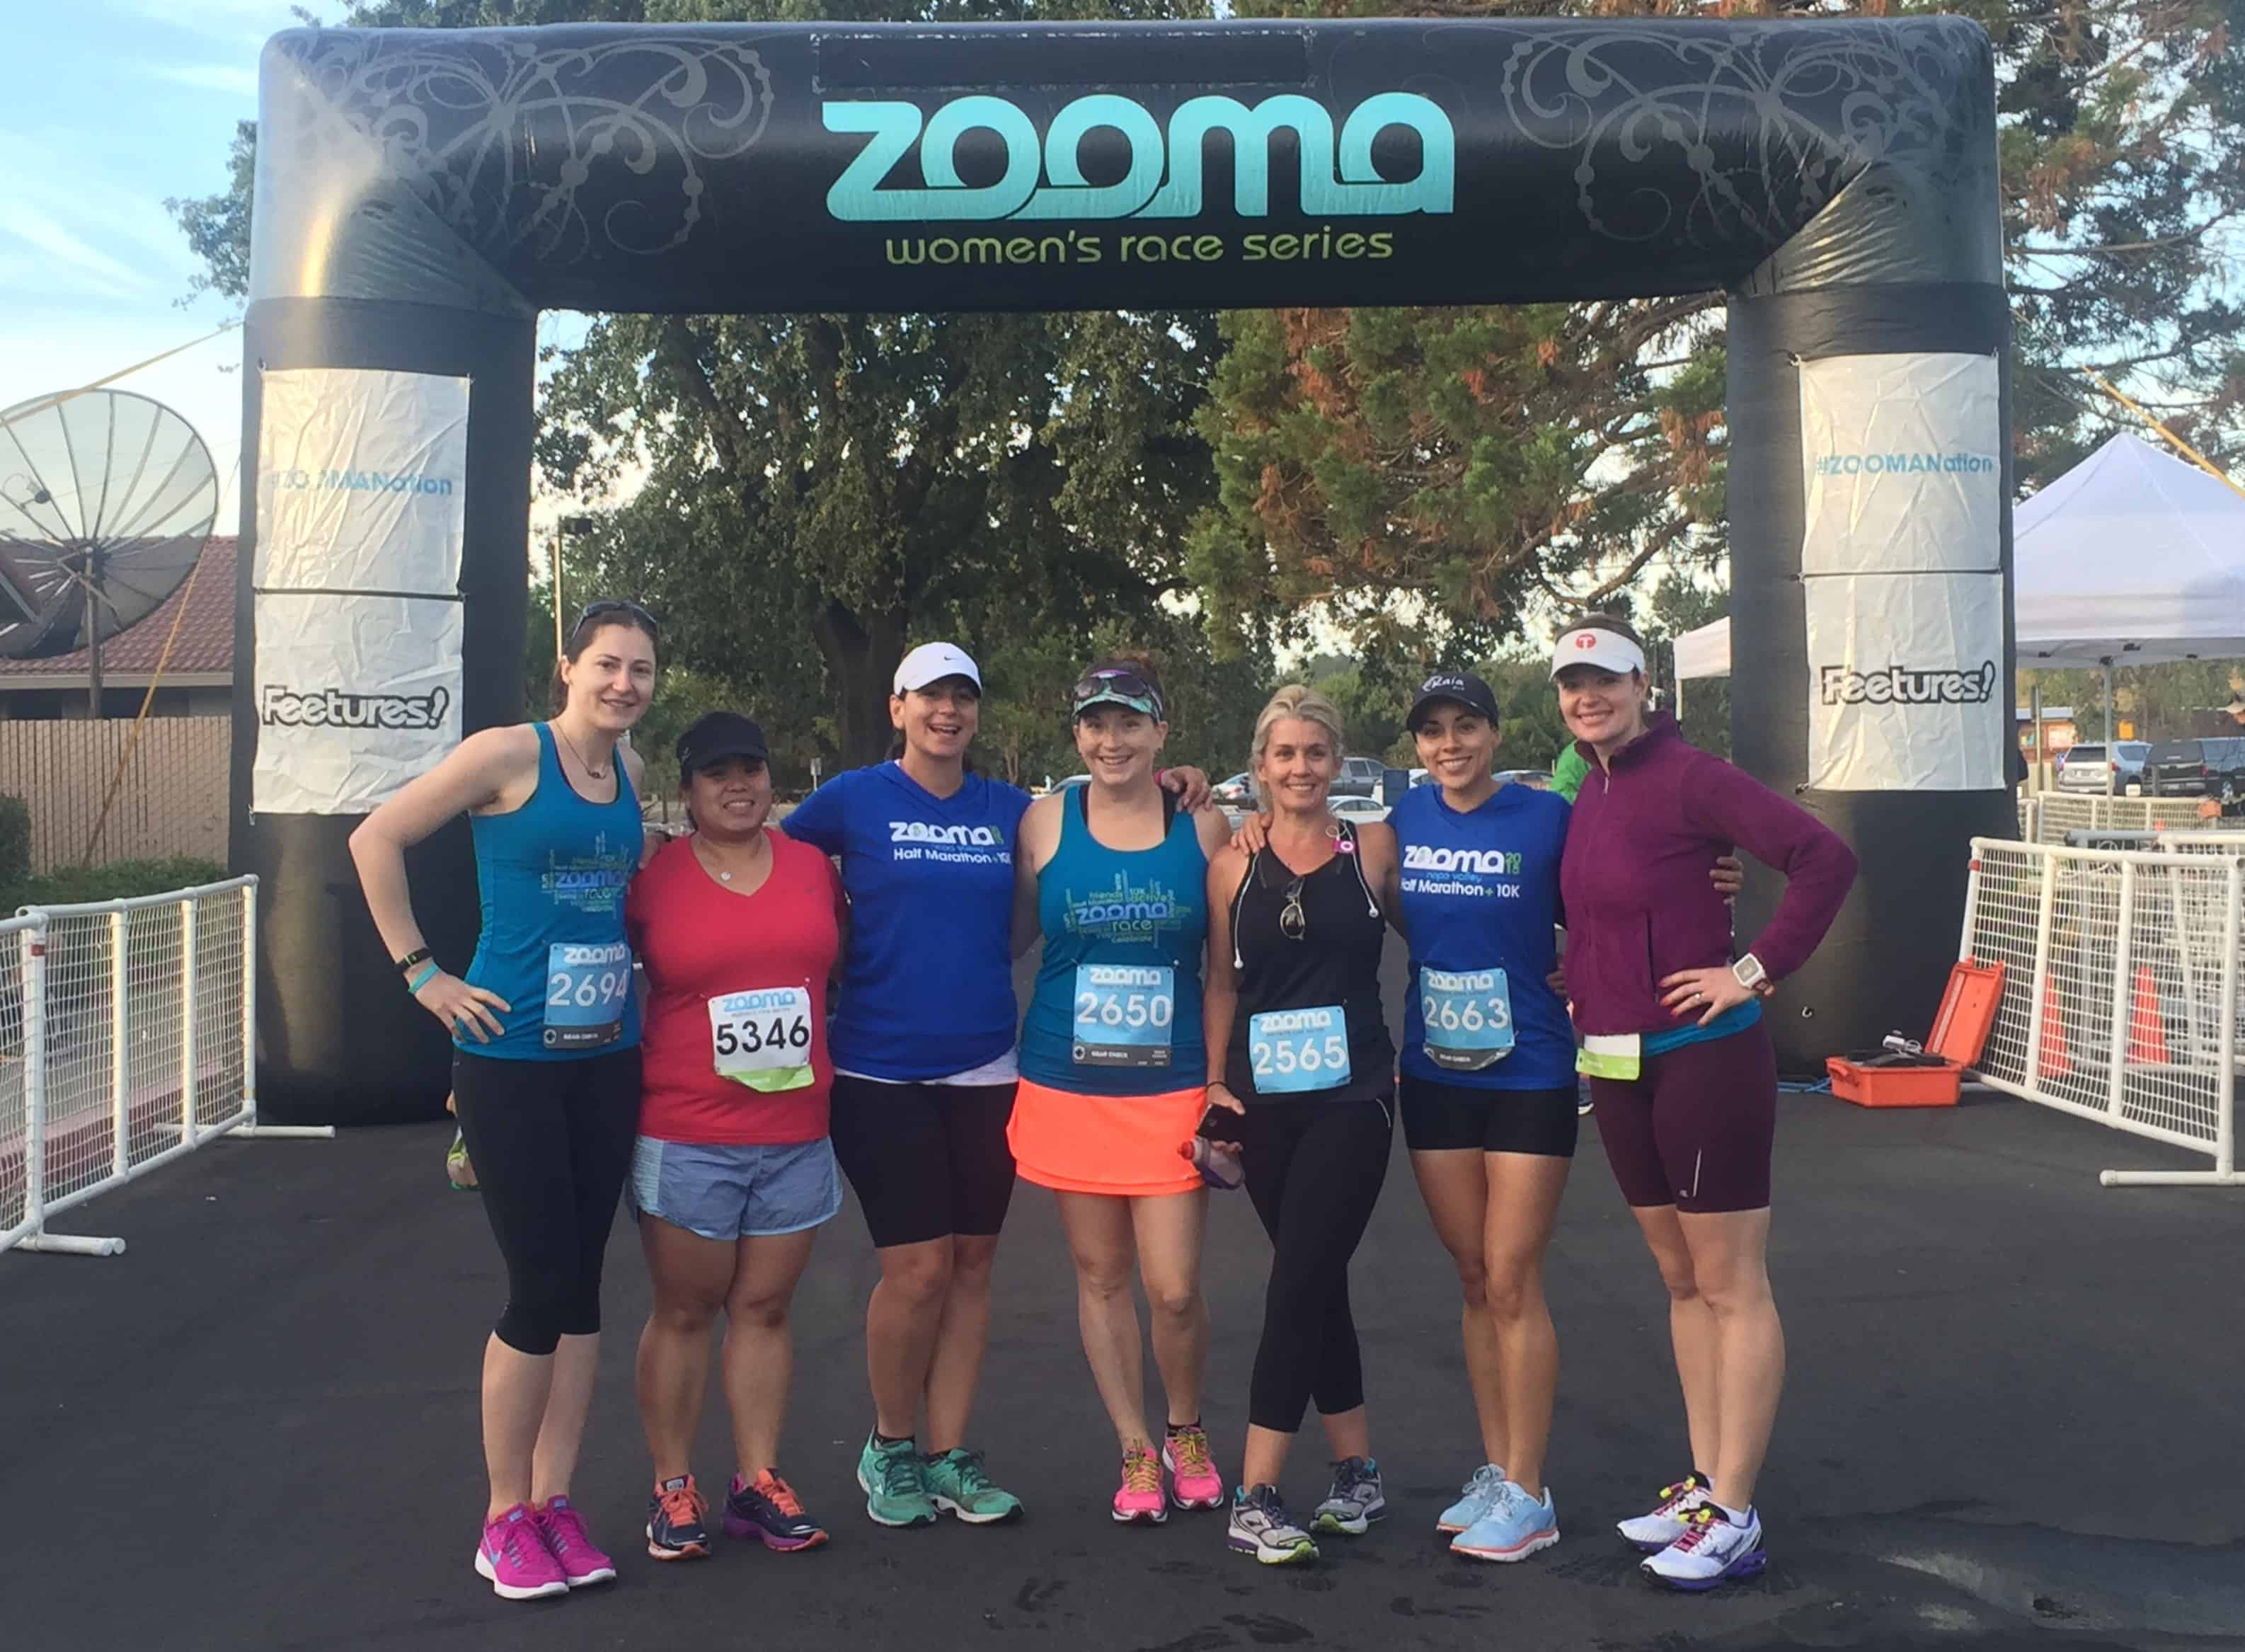 The Zooma Ambassadors before the race.